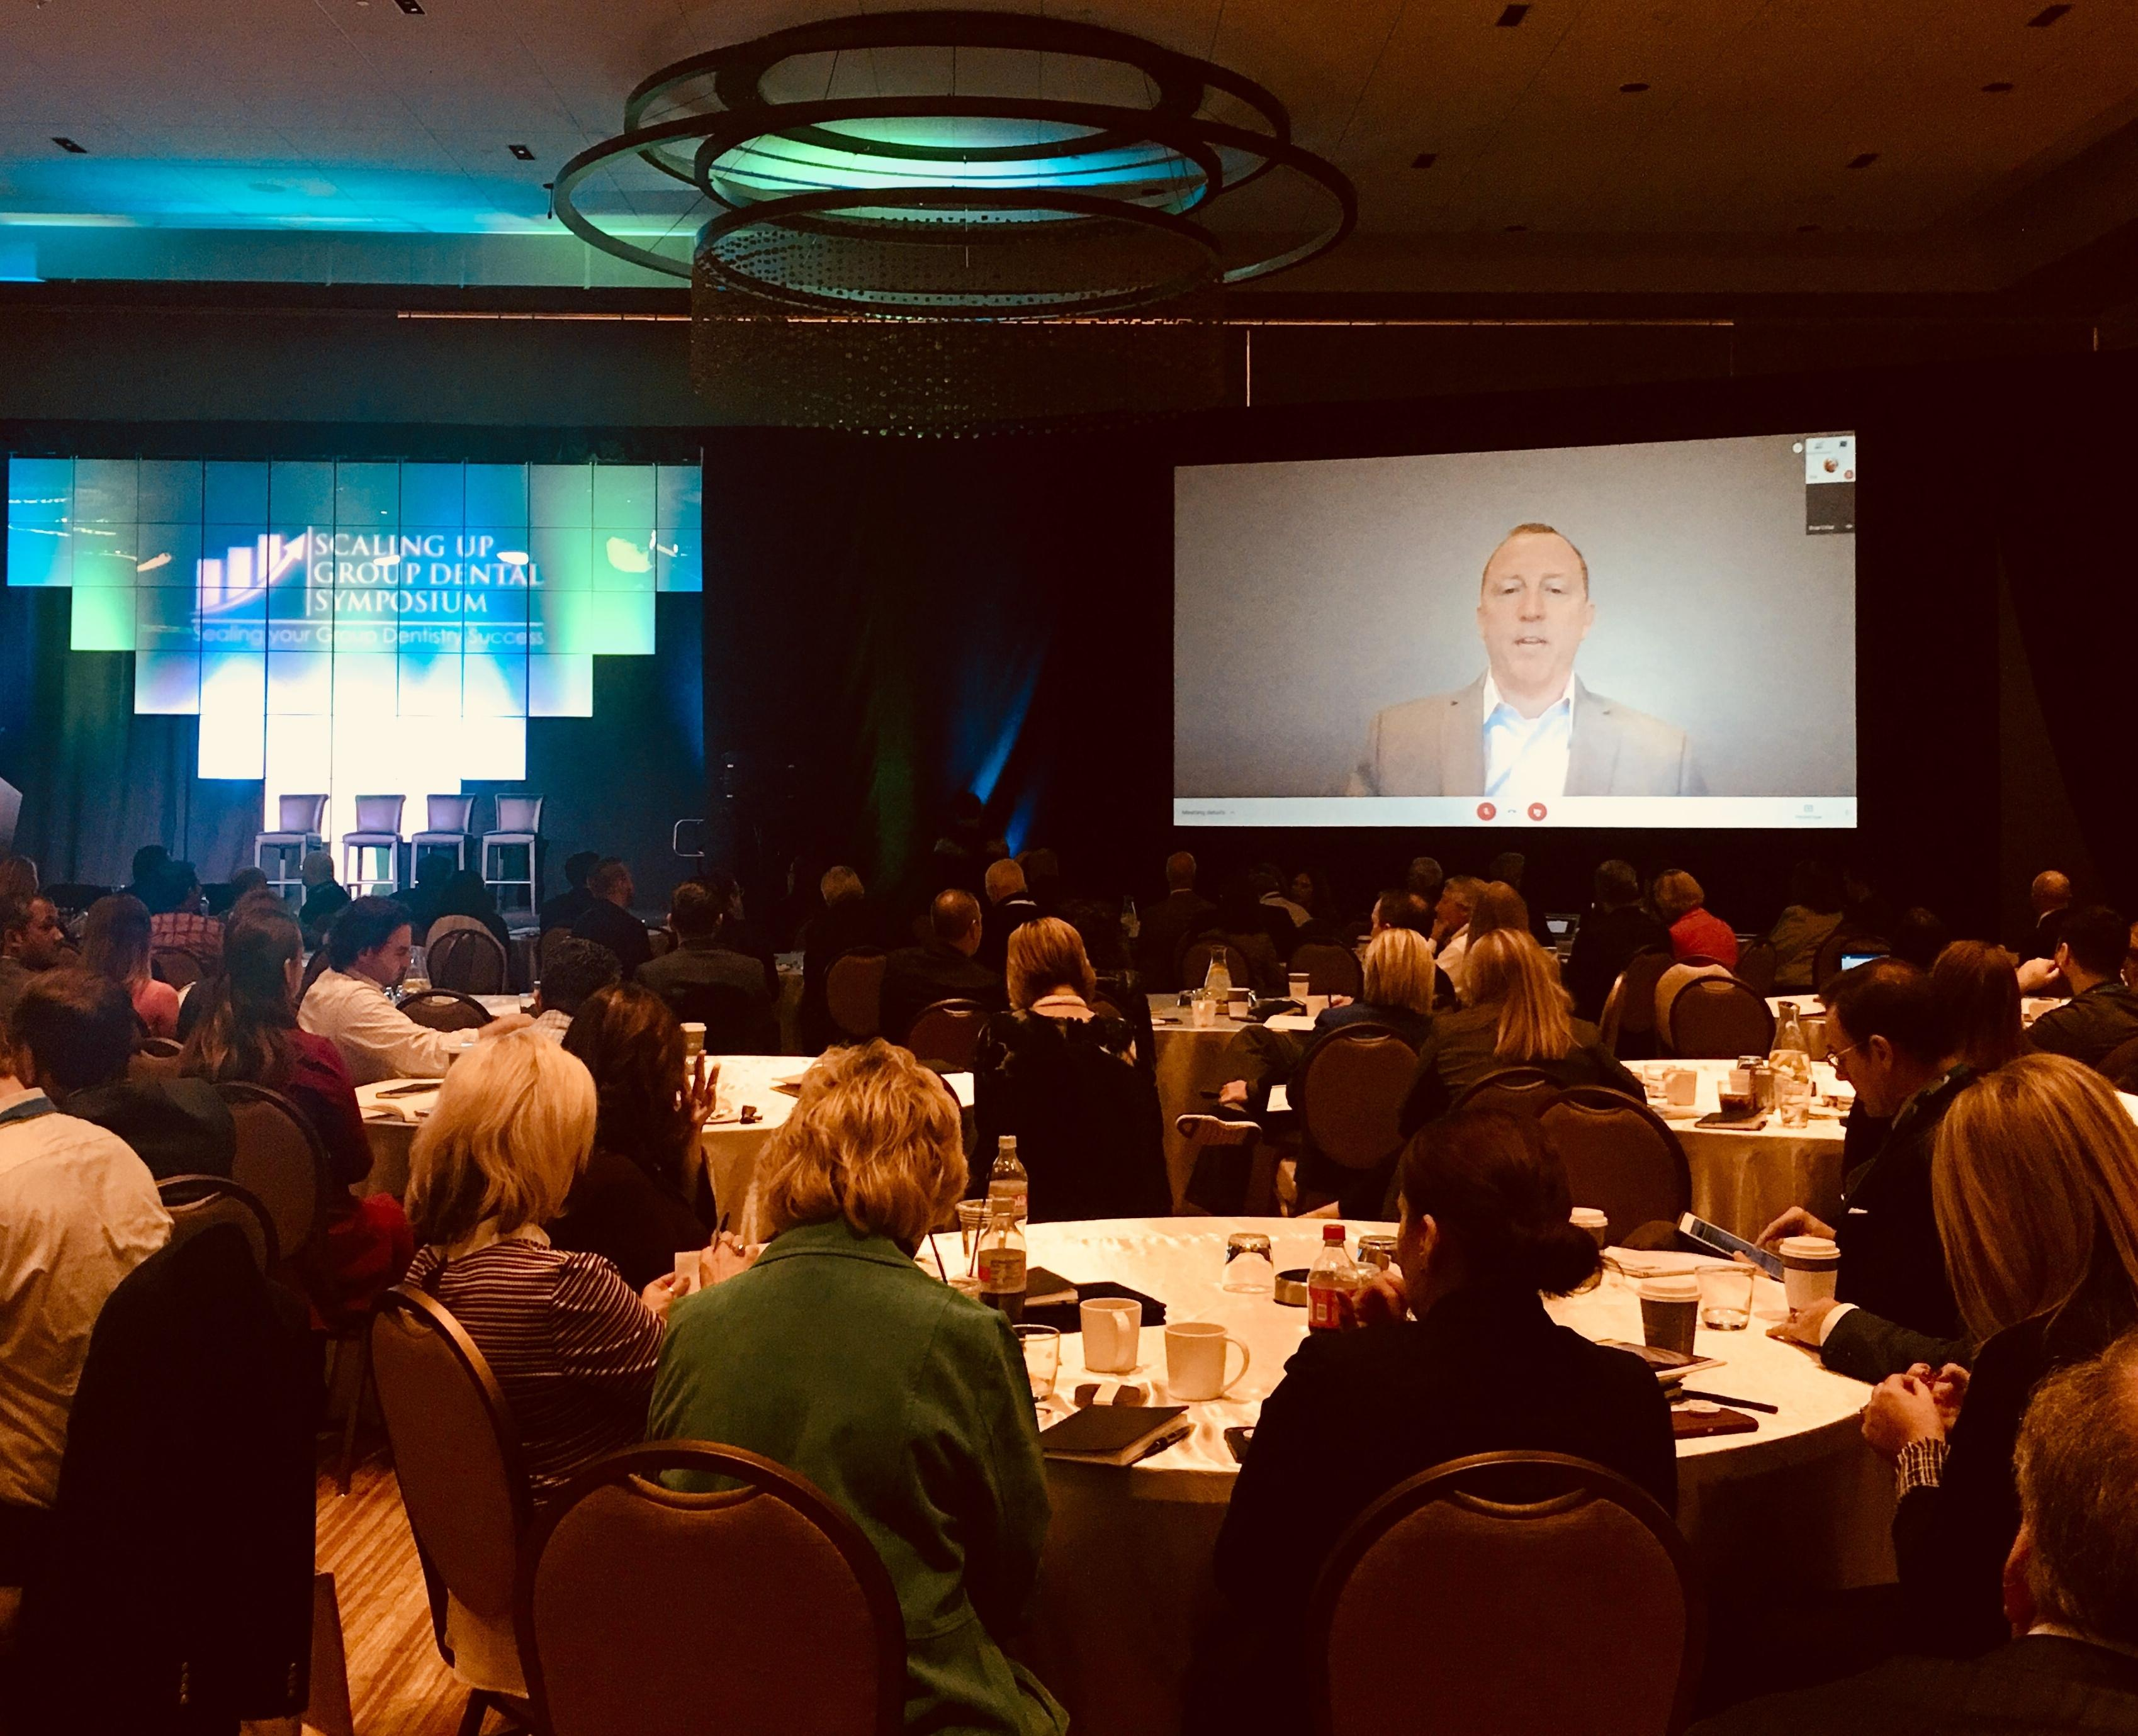 Brian Colao Speaks at the 2018 Scaling Up Conference in Louisville